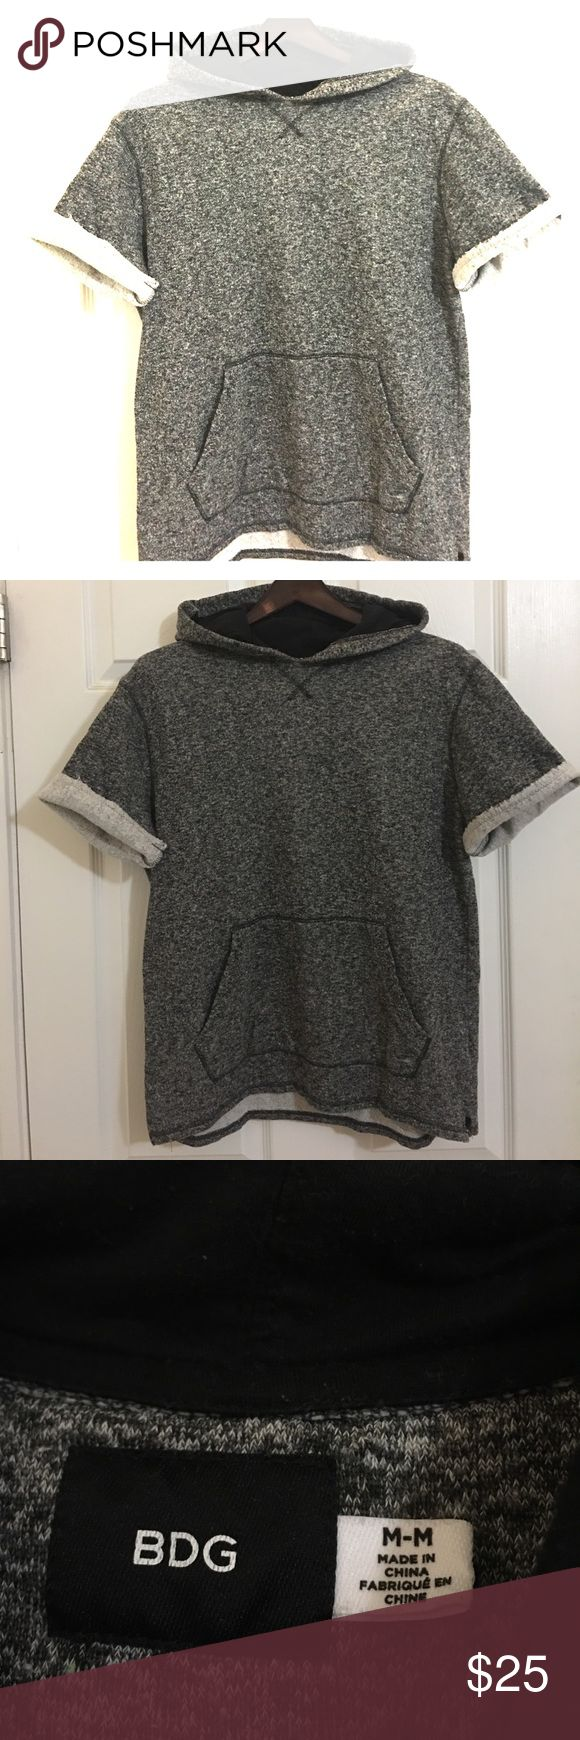 Urban Outiftters Cut Off Sleeve Hoodie Urban Outifitters / Marled Gray / Cut off Sleeve / Hoodie / Medium / Perfect with Joggers and statement sneakers for a casual weekend look Urban Outfitters Shirts Sweatshirts & Hoodies